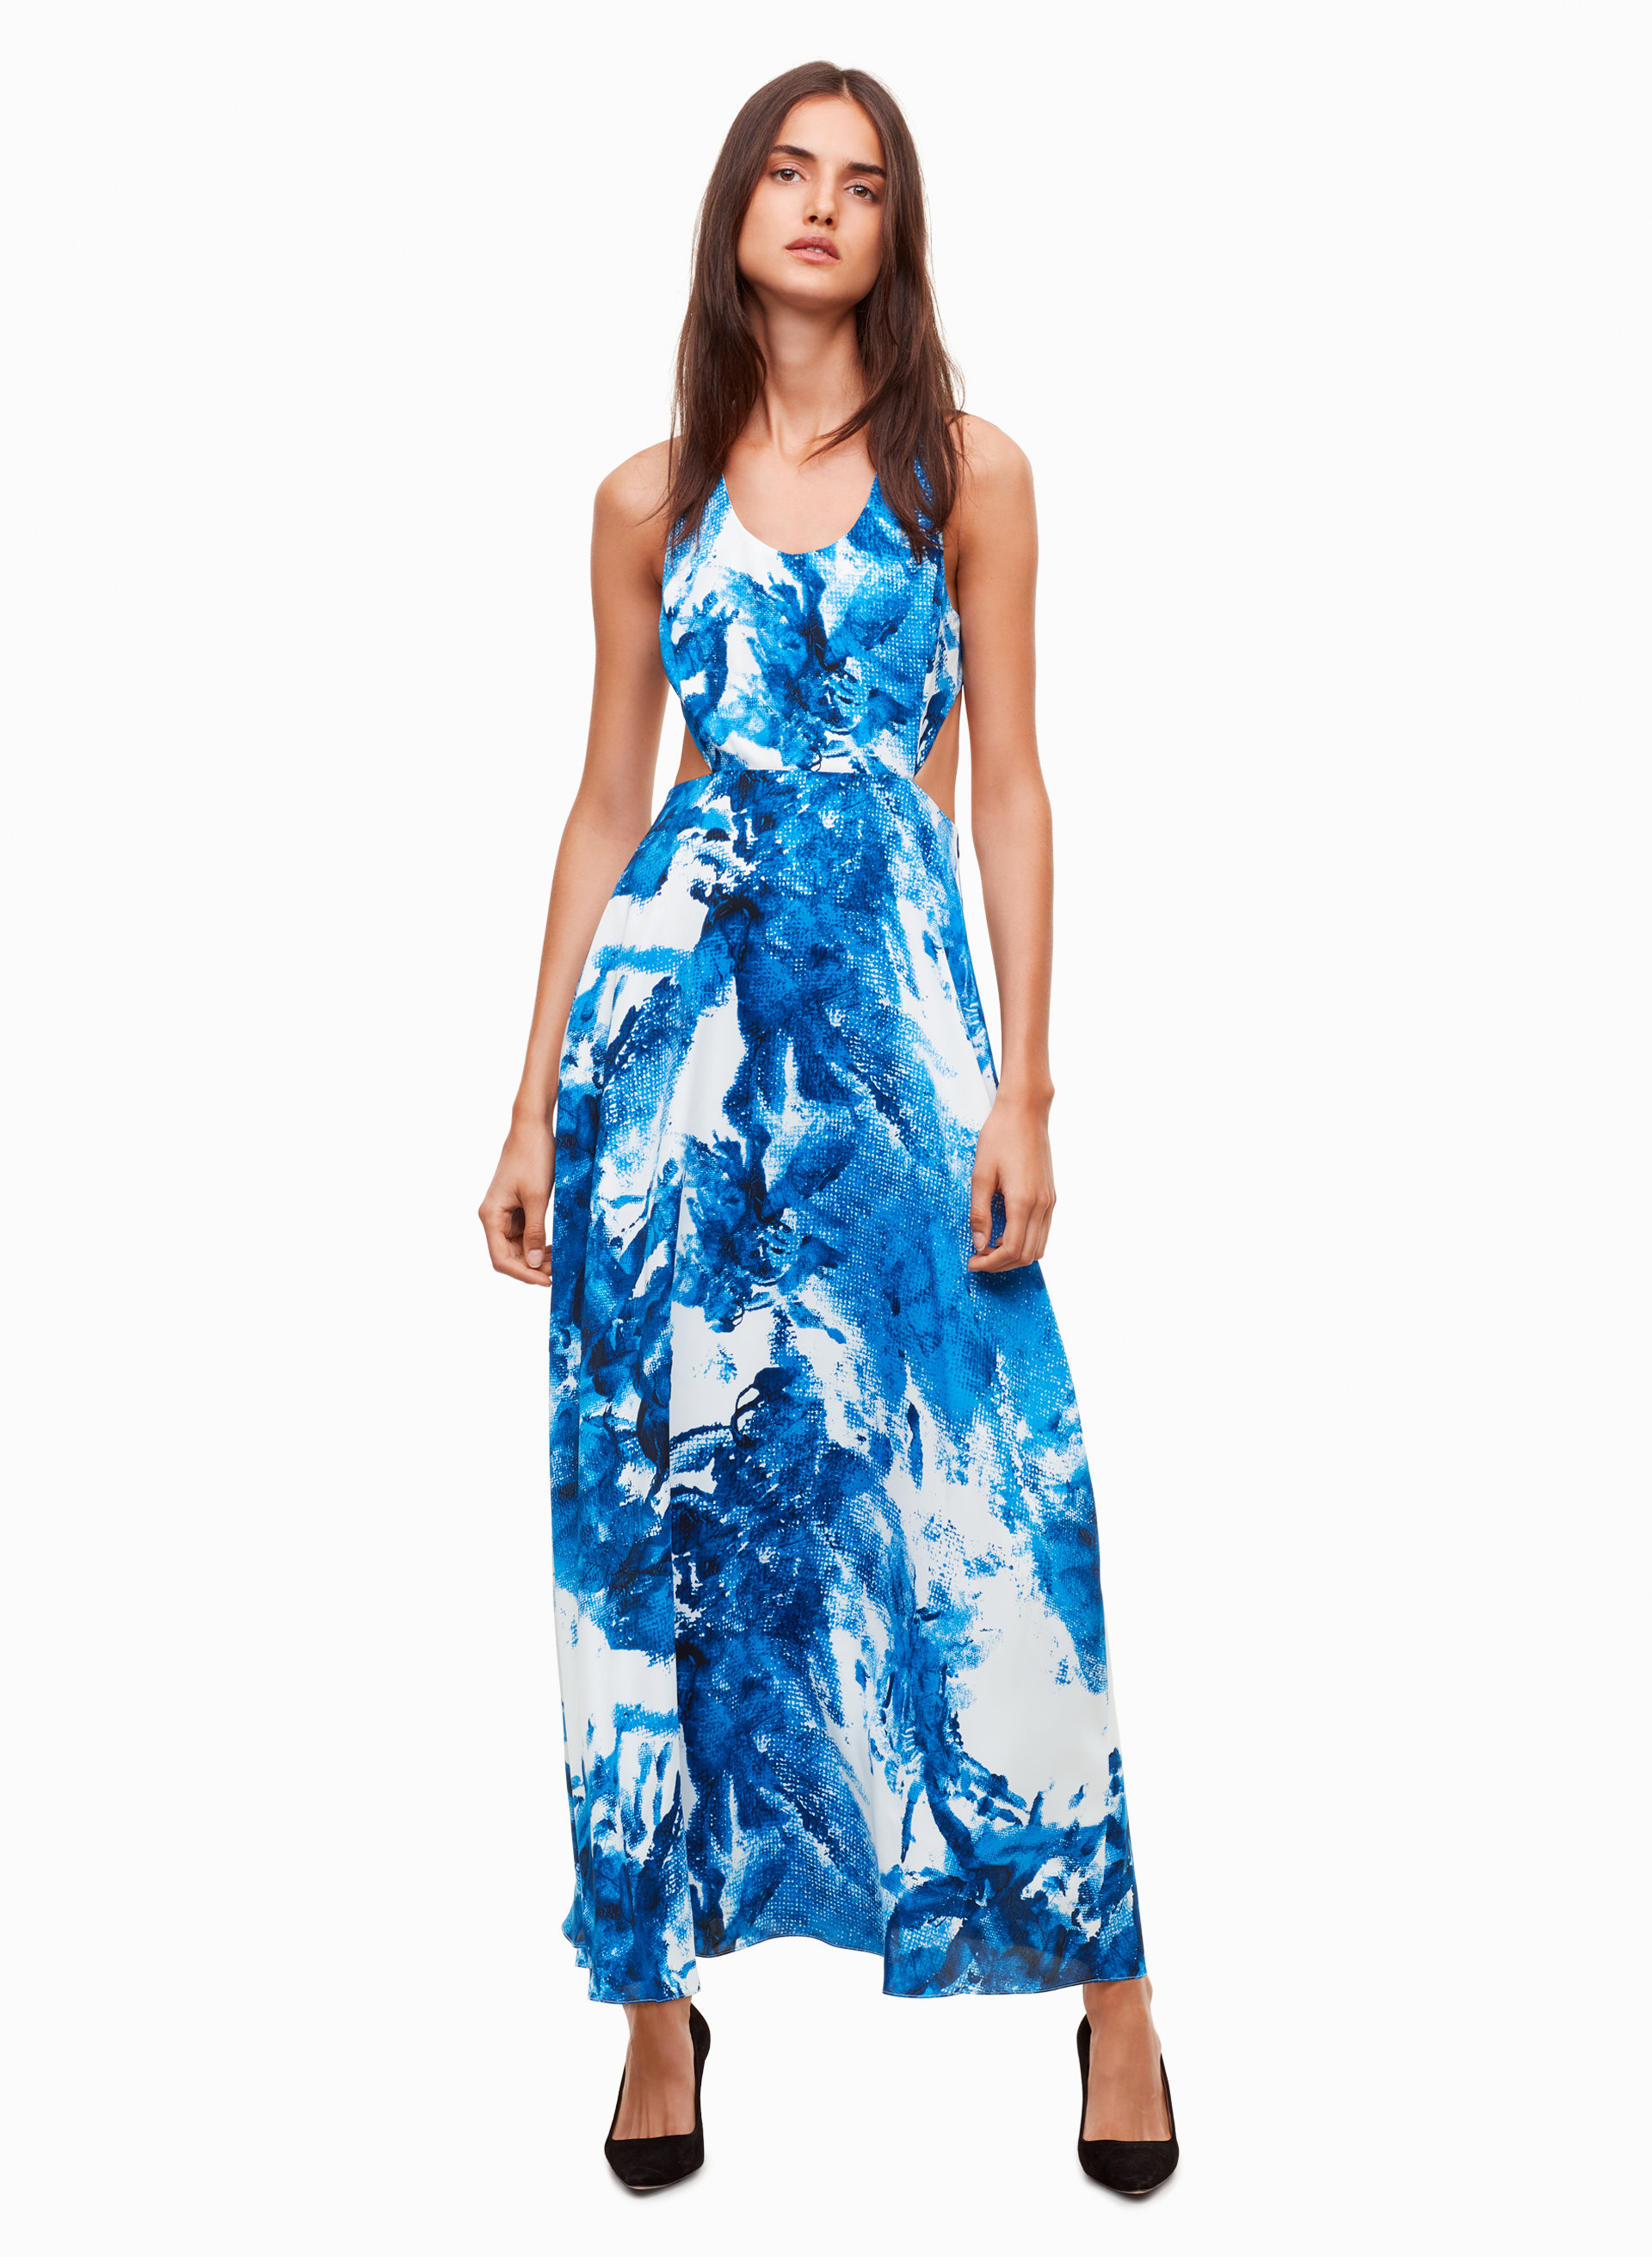 Model citizen maxi dress